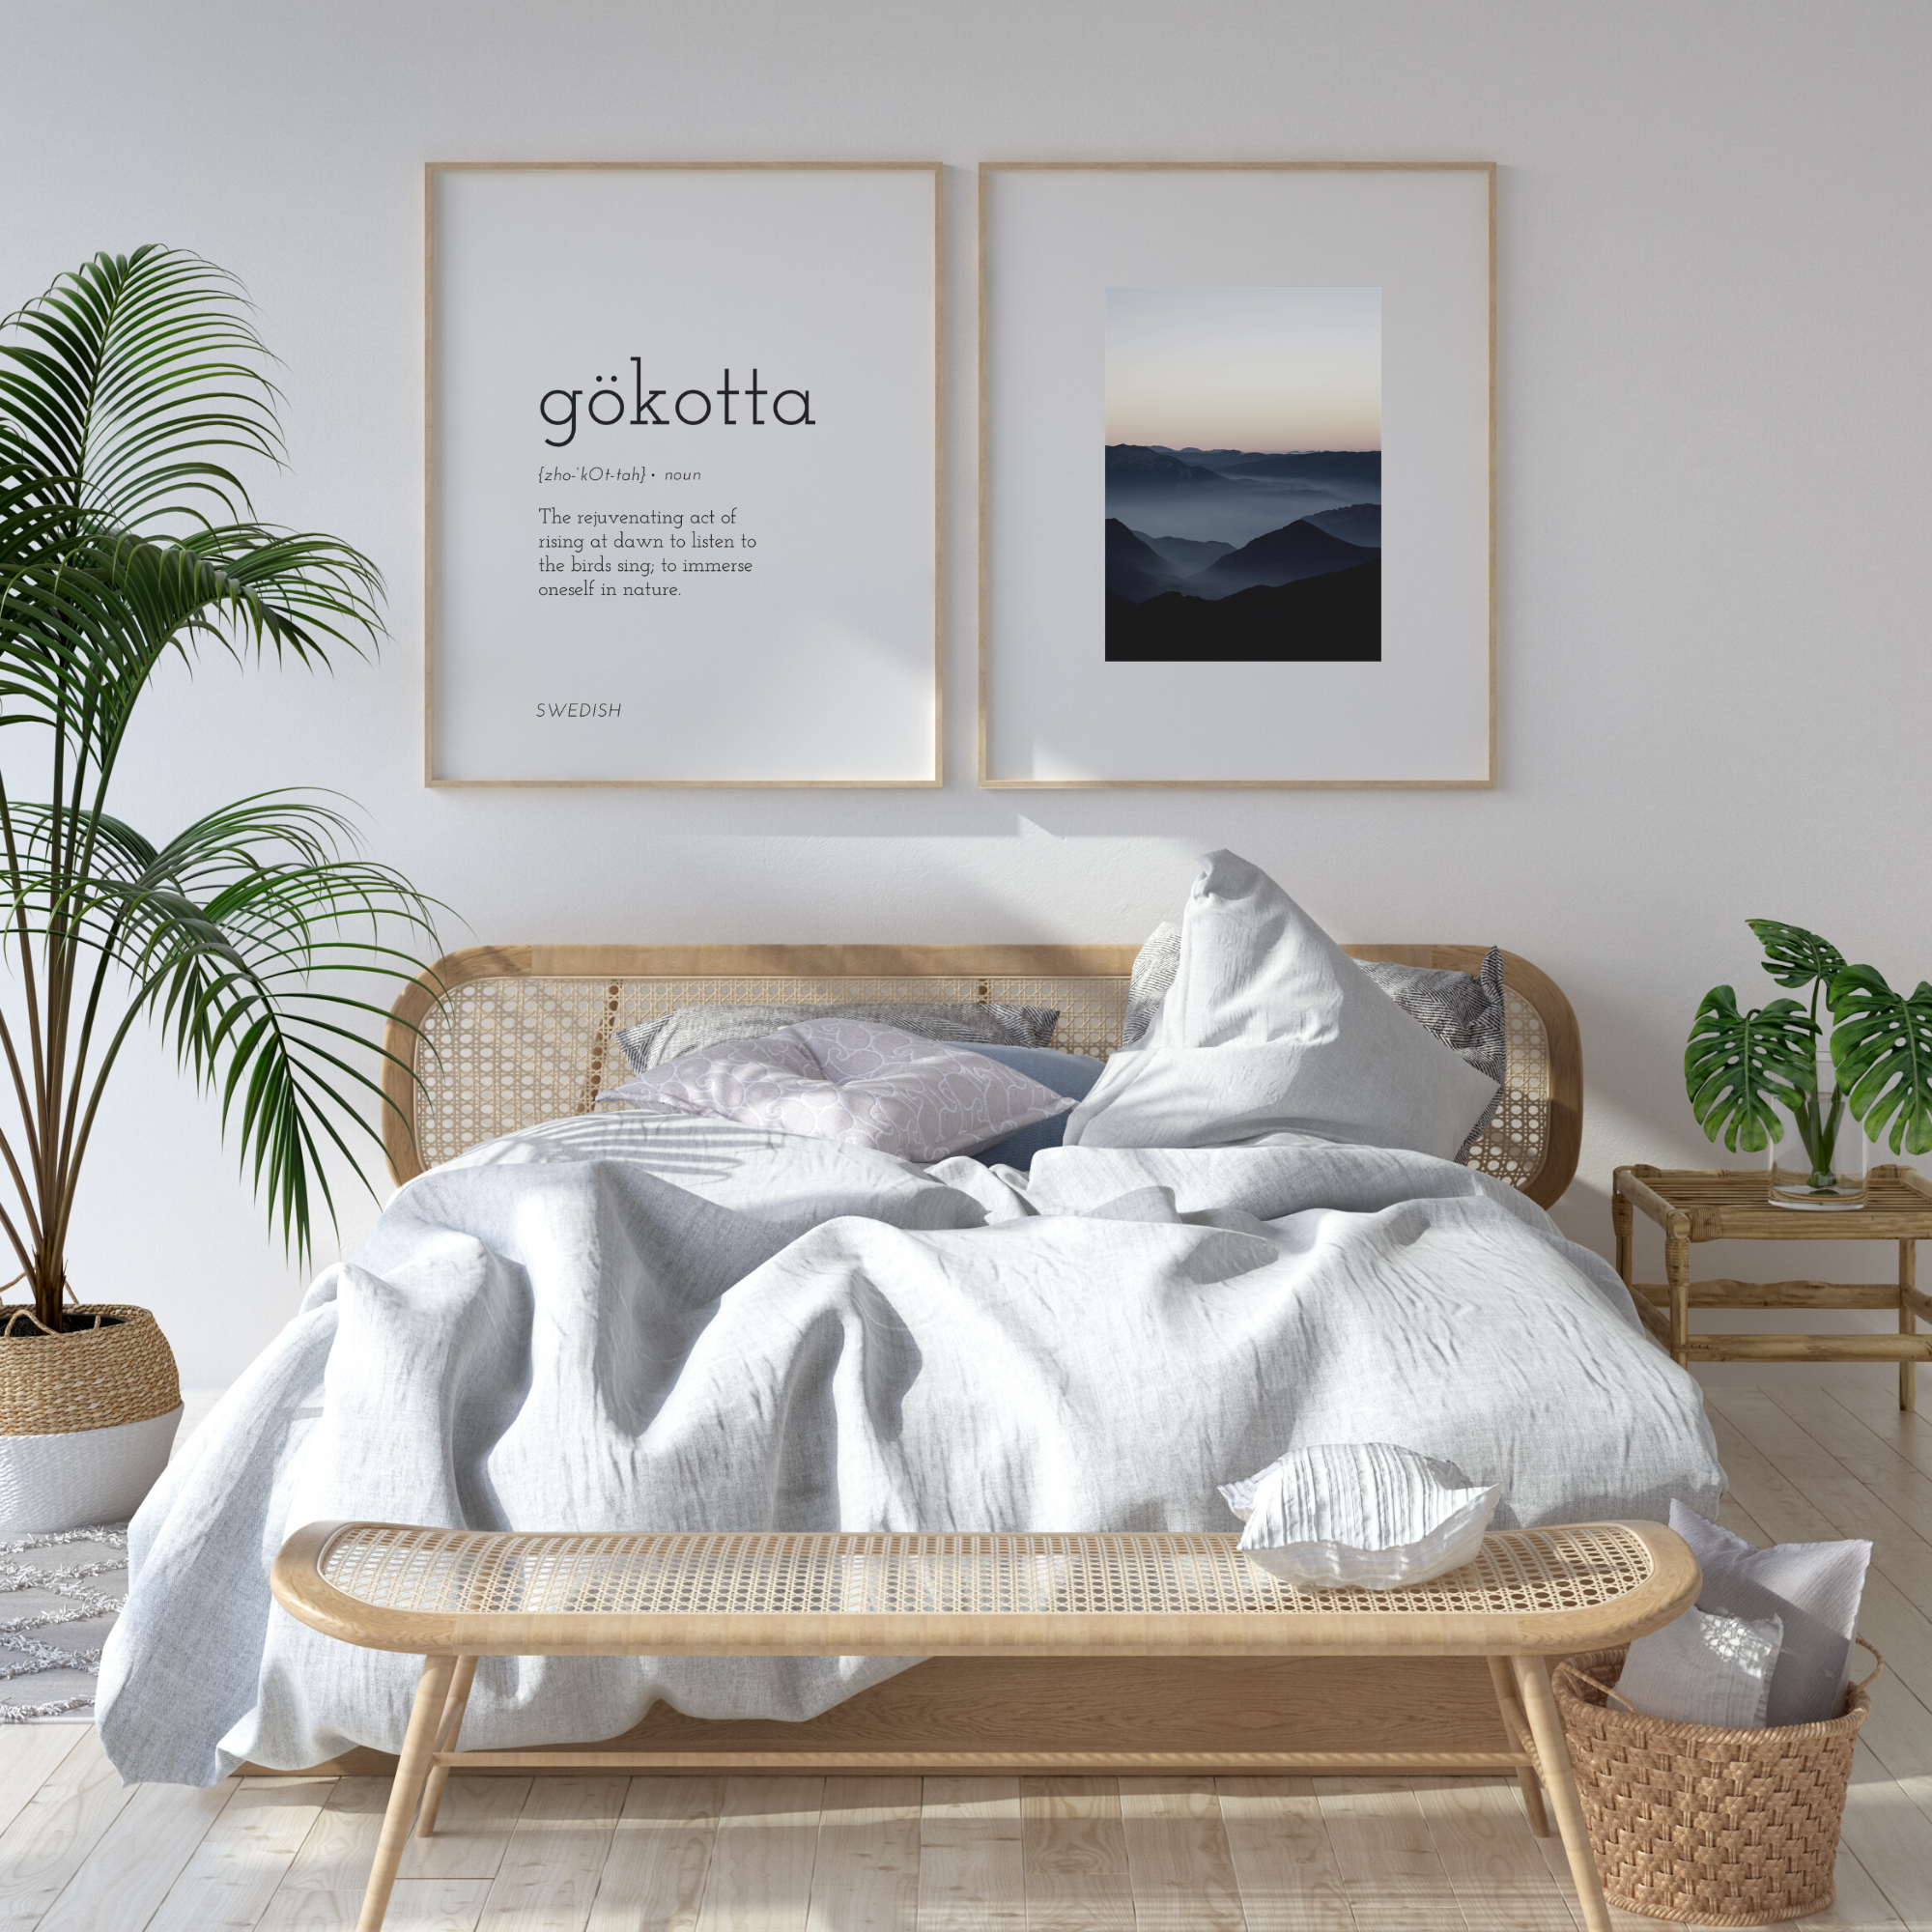 Swedish Morning Prints Set Of 2 Couples Bedroom Art Gokotta Word Phrase Sunrise Mountain Scandinavian Nordic Sky Minimal Wall Decor In 2020 Scandinavian Bedroom Modern Farmhouse Style Bedroom Farmhouse Style Bedroom Decor